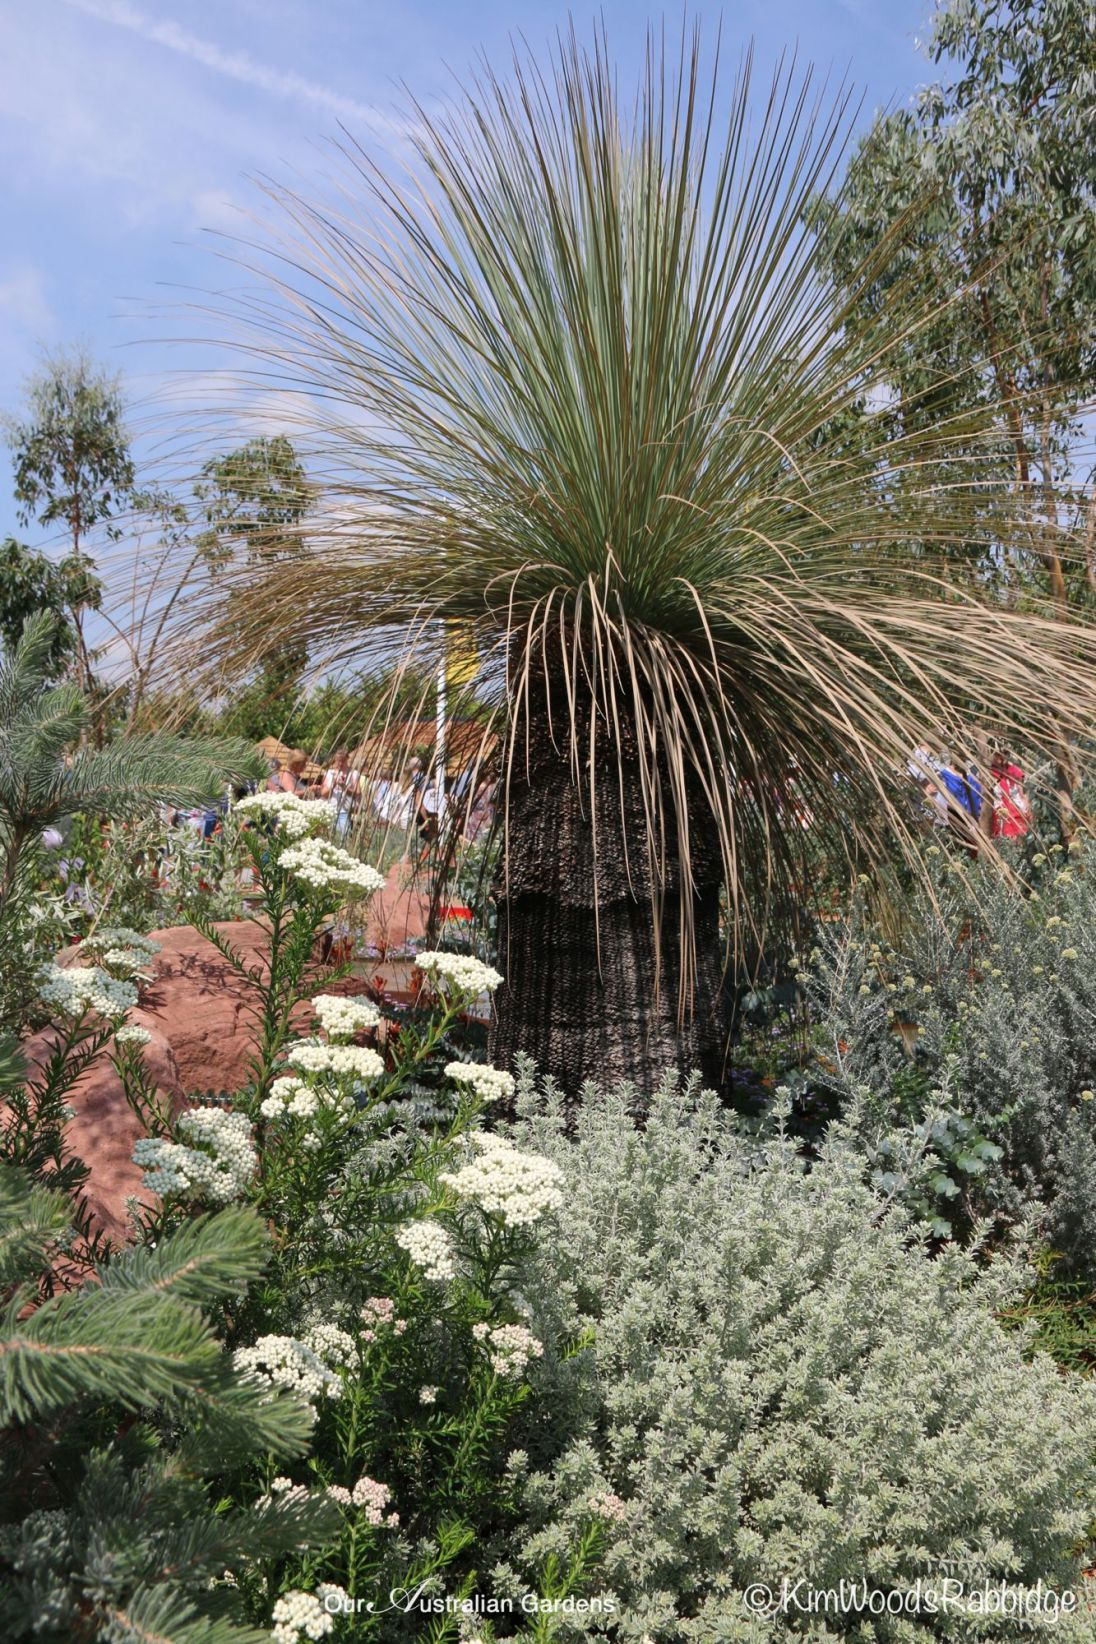 Woolly bush, ozothamnus, eromophla and Johnson's grass tree.